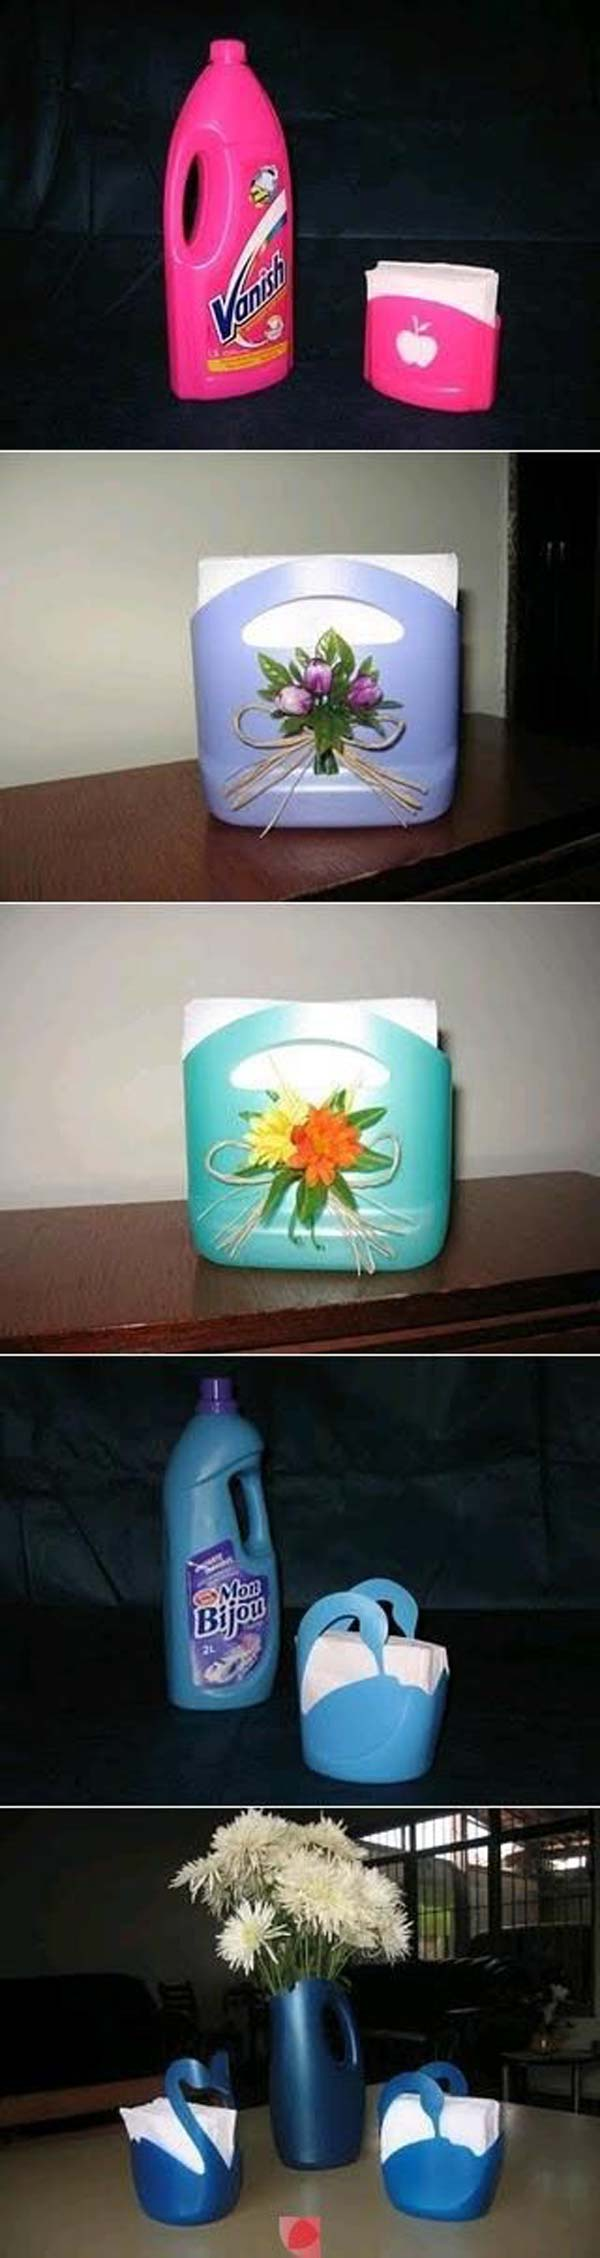 reuse-old-bottle-ideas-8-2